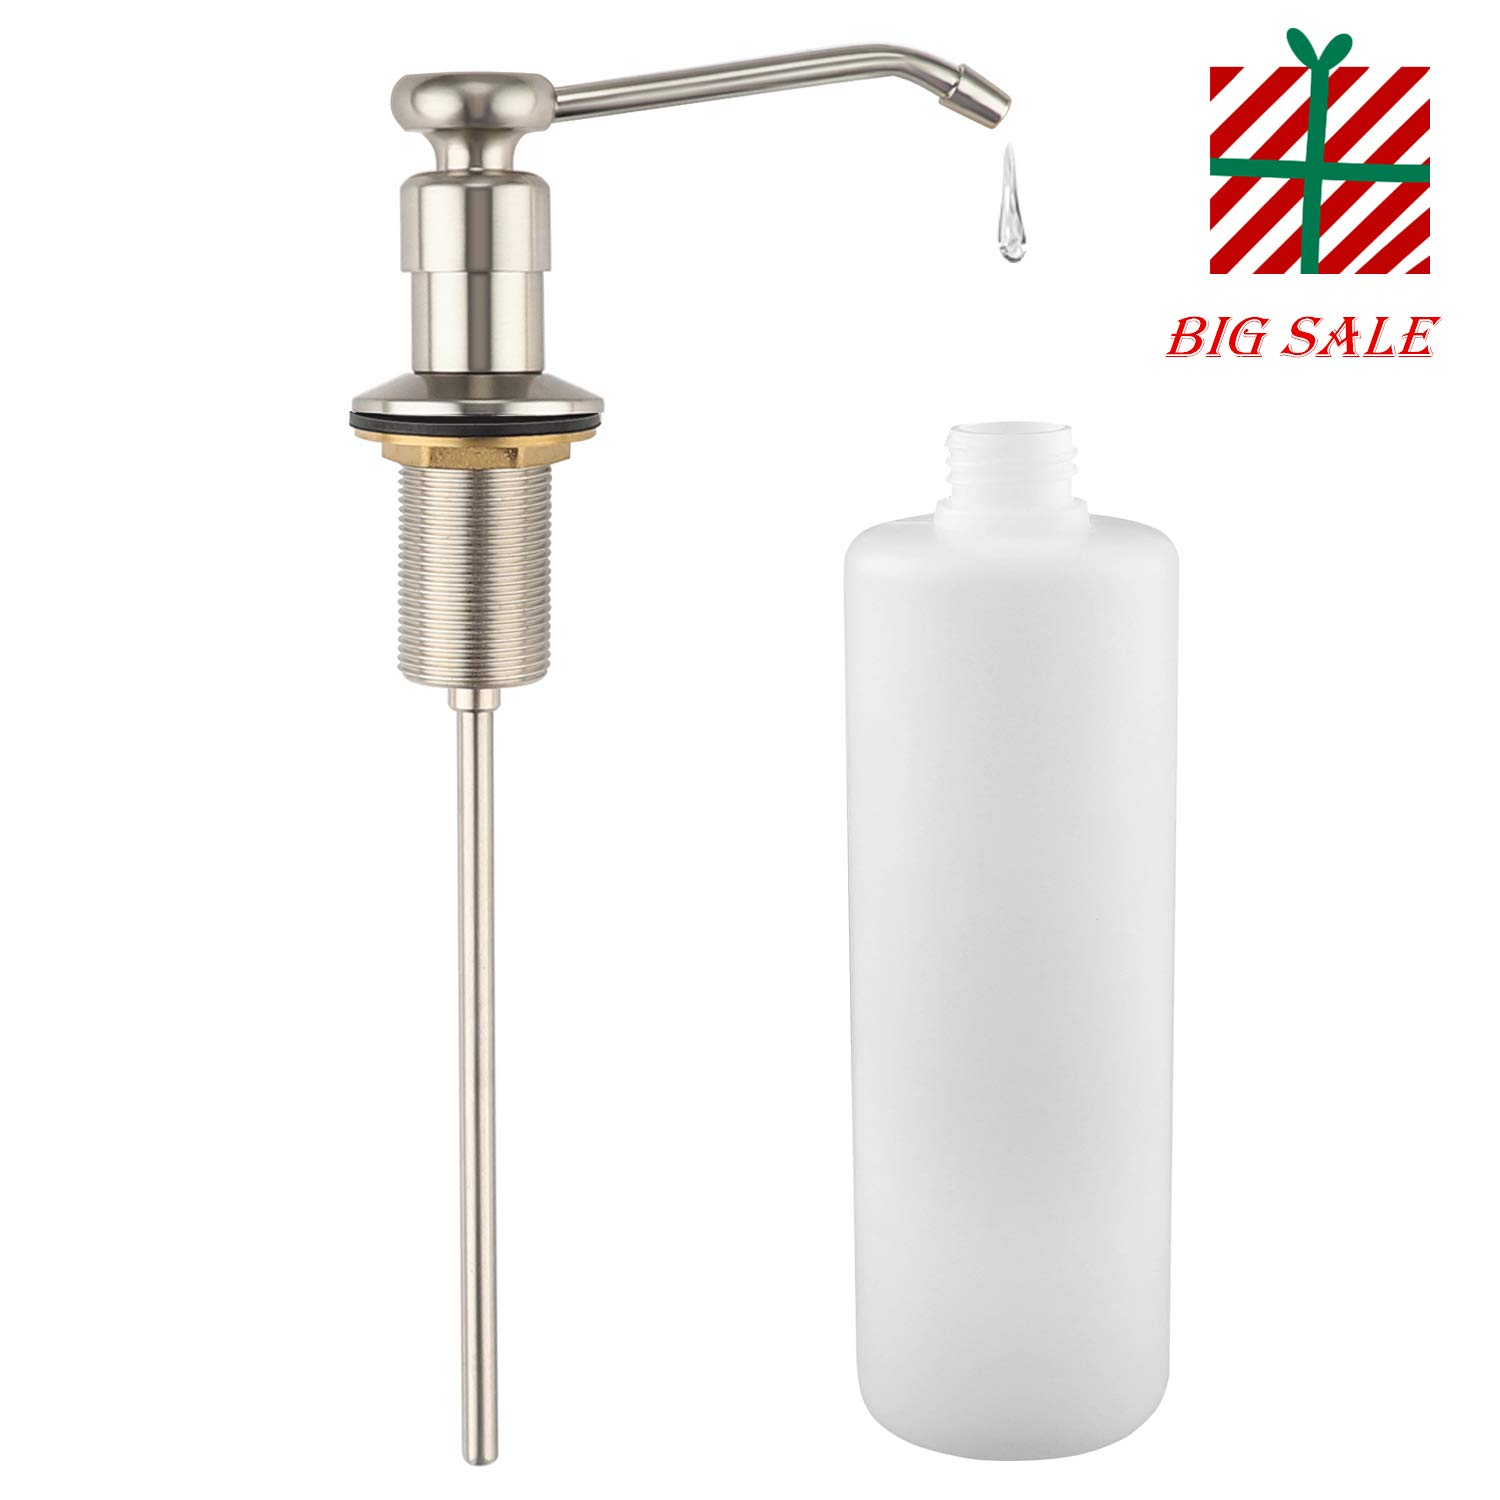 Soap Dispenser for Kitchen Sink - (Brushed Nicke) Made of Complete Brass and Stainless Steel Finish,Large Capacity 280ml Bottle Sink Soap Dispenser,LOUYC